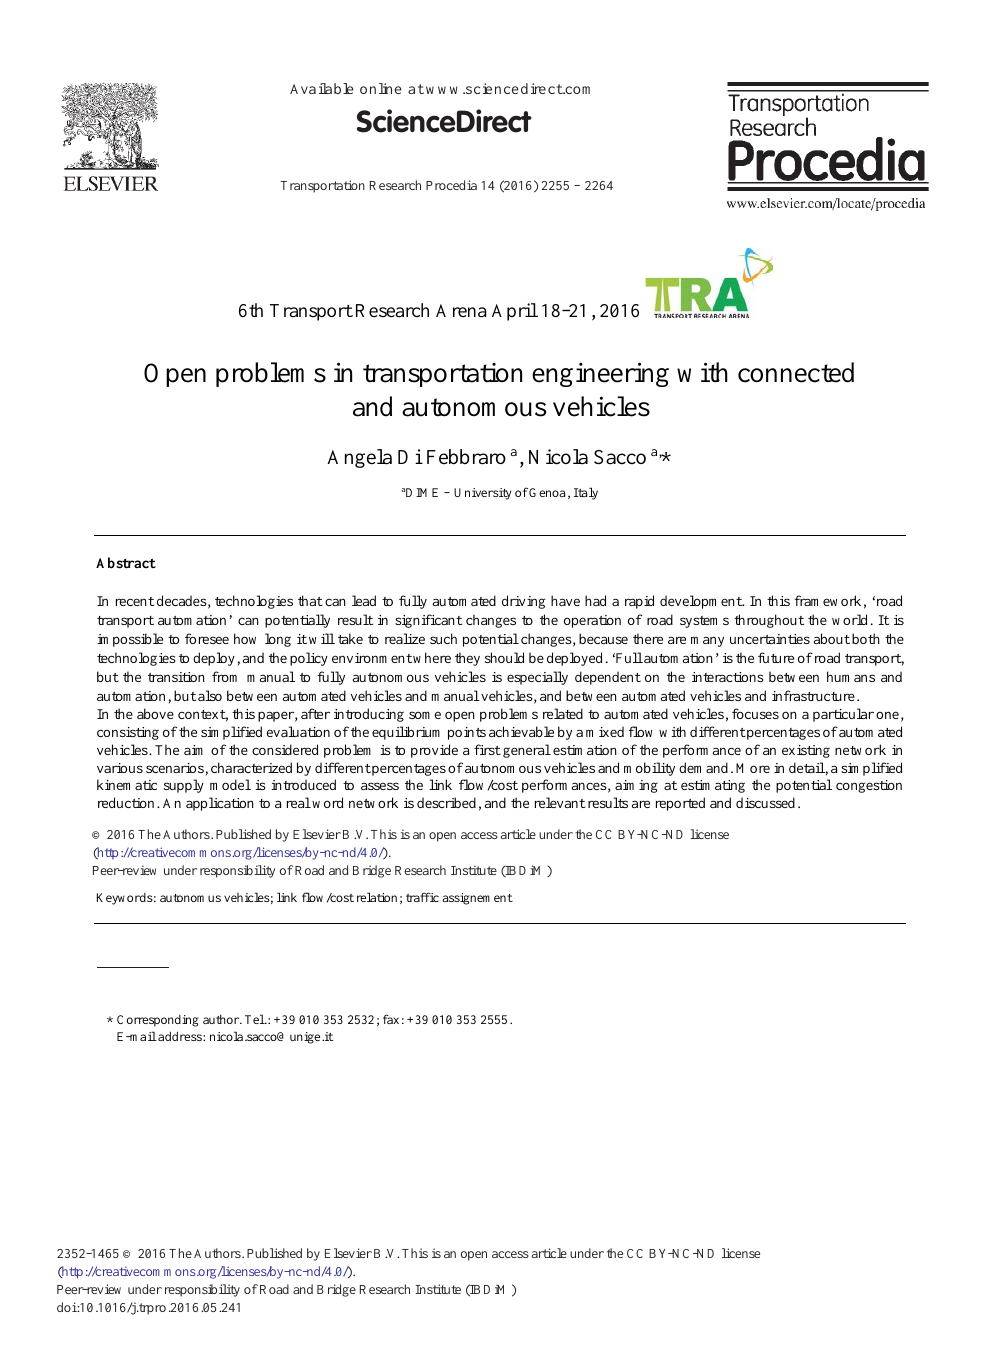 Open Problems in Transportation Engineering with Connected